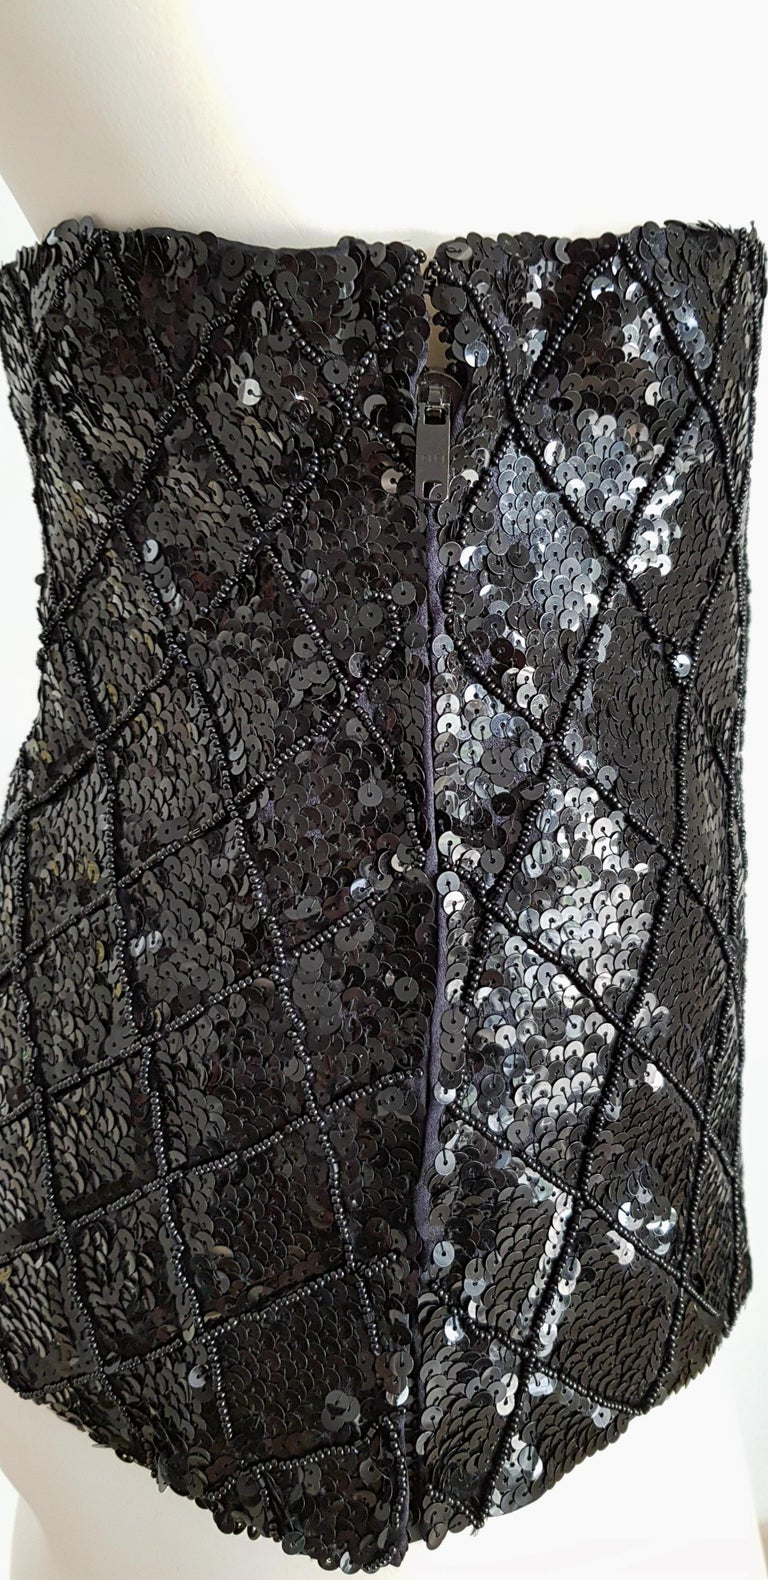 Women's VALENTINO Beads Sequins elegant Black Waist Band for Dress gown - Unworn, New  For Sale